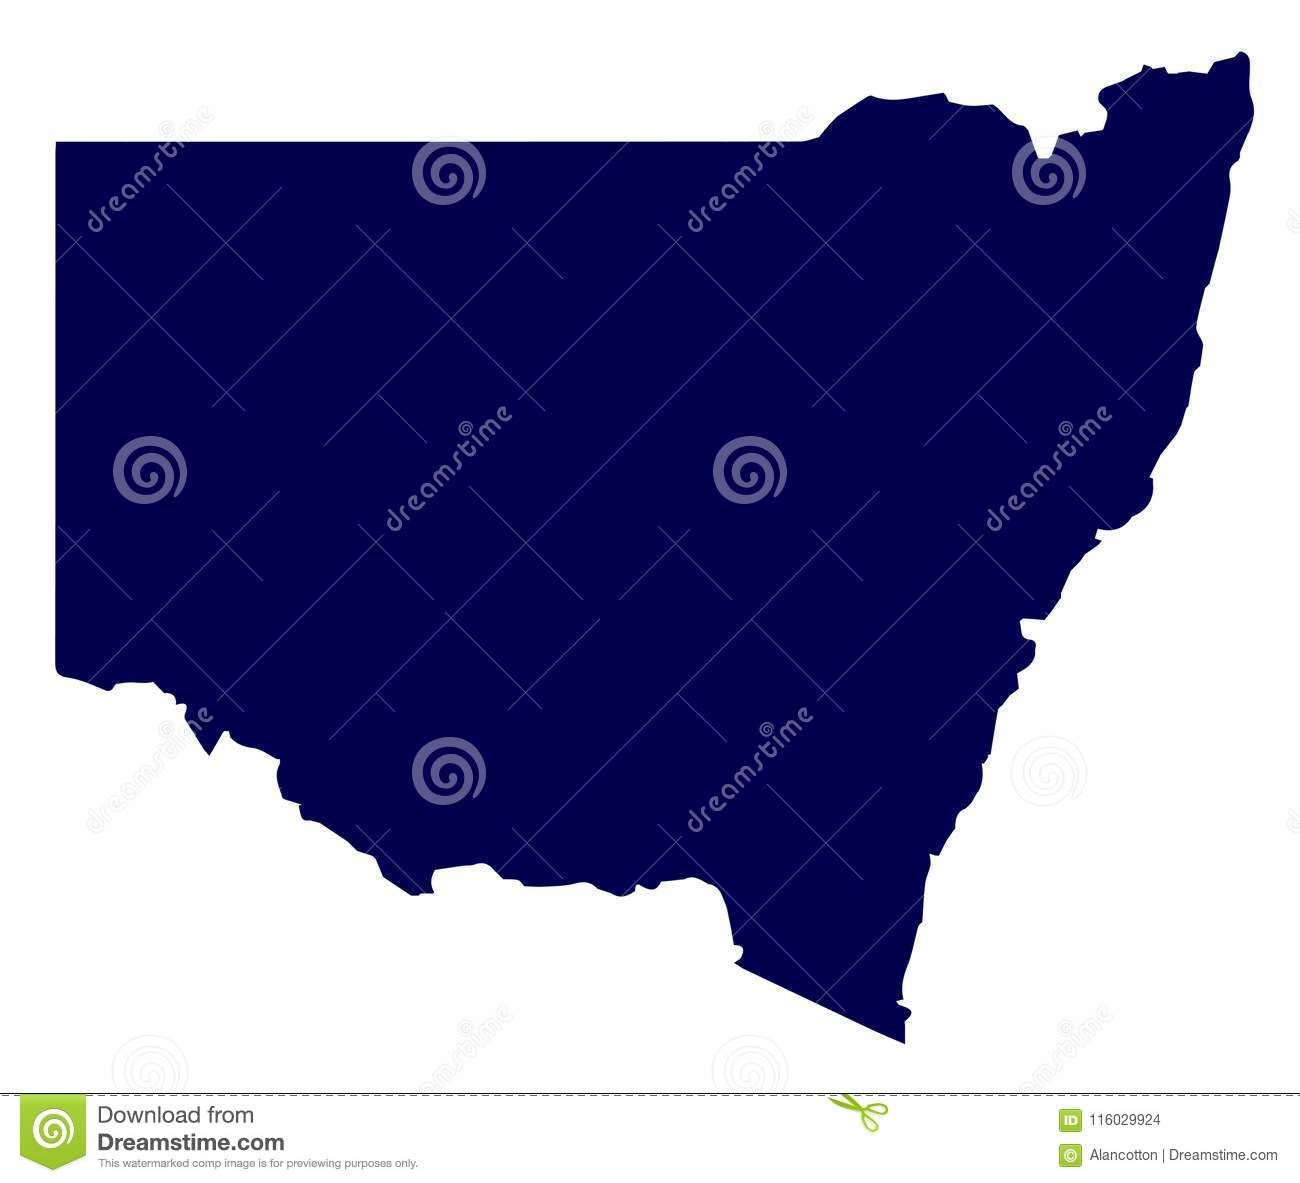 Picture of: Australia New South Wales State Silhouette Stock Vector Illustration Of Vector Wales 116029924